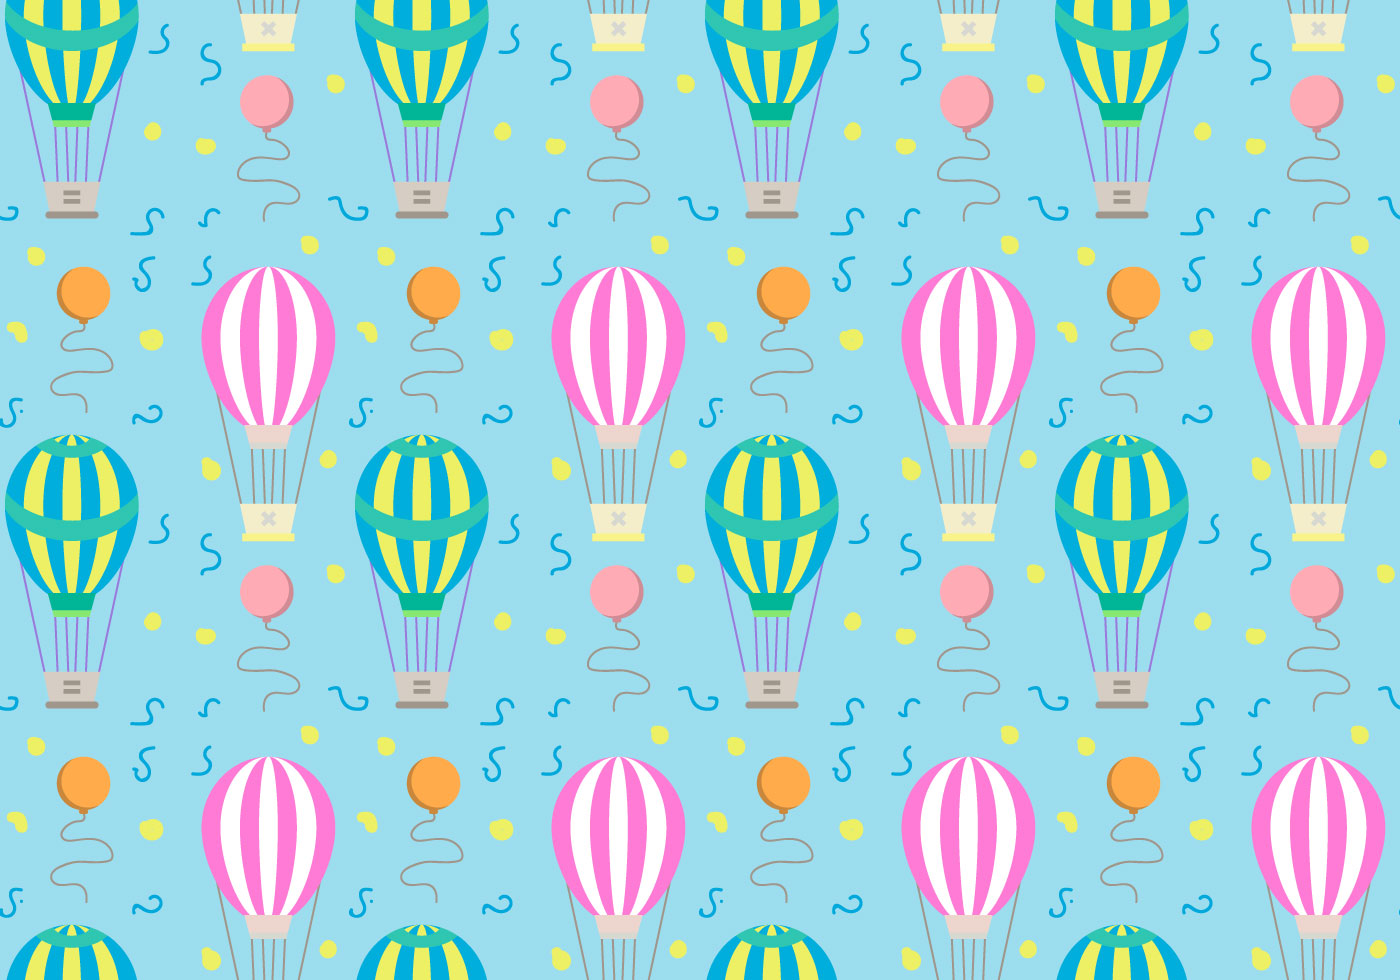 hot air balloons pattern vector download free vector art breast cancer clip art small breast cancer clip art symbol